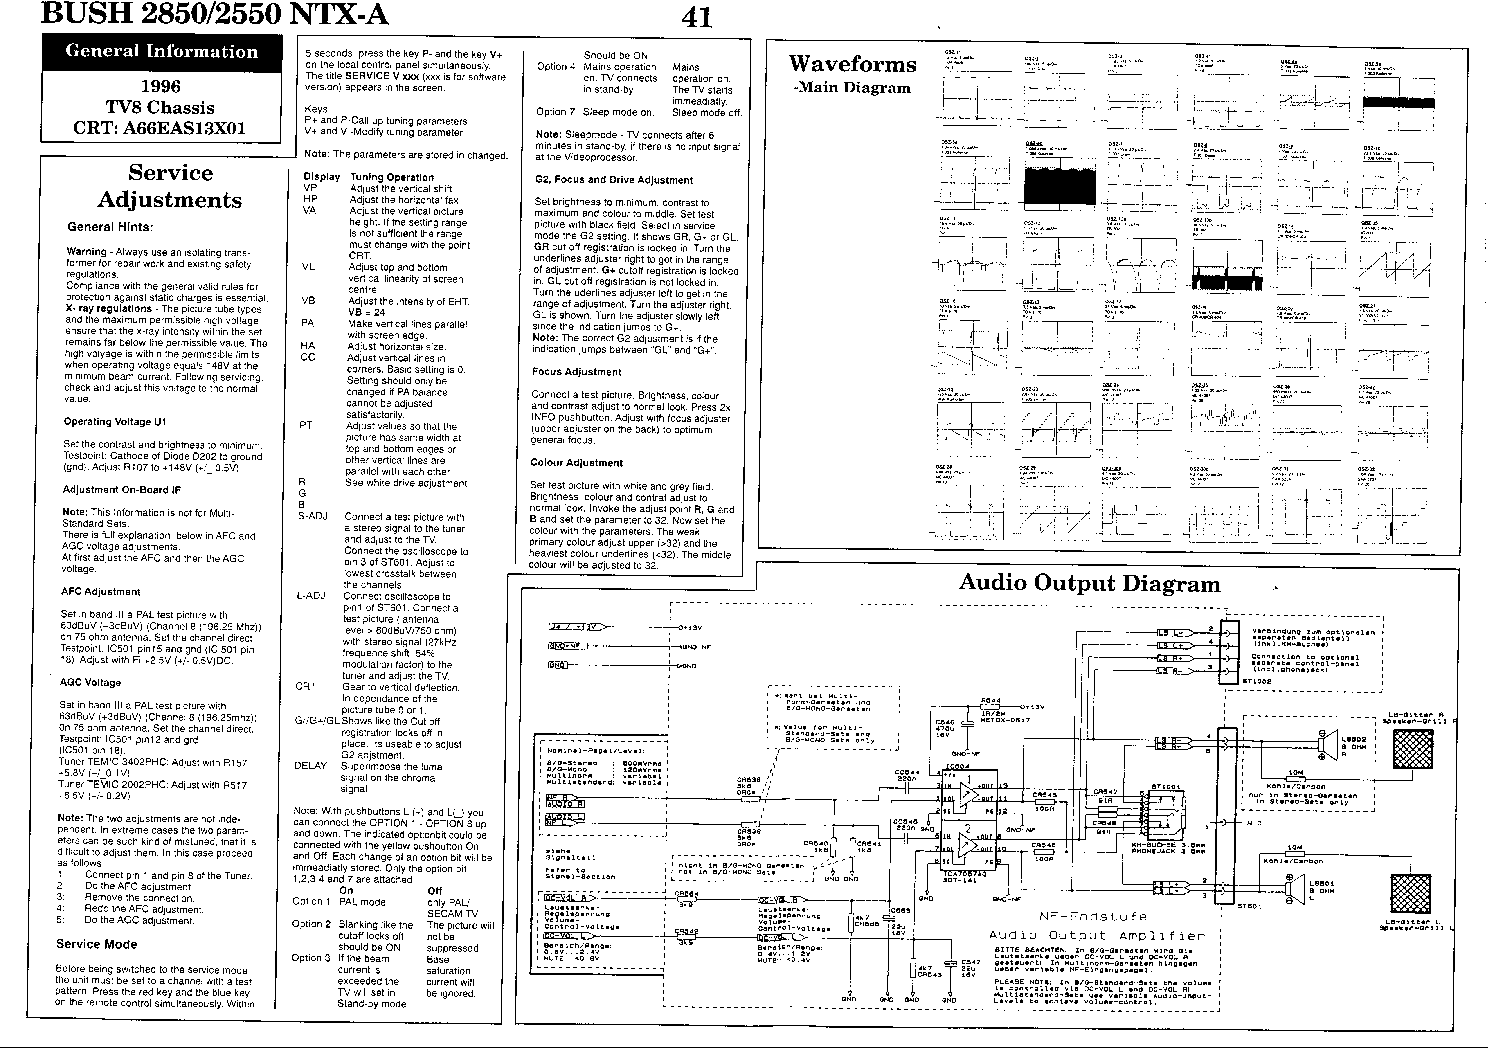 BUSH 2550 2850 NTX-A TV SCHEMATIC Service Manual free